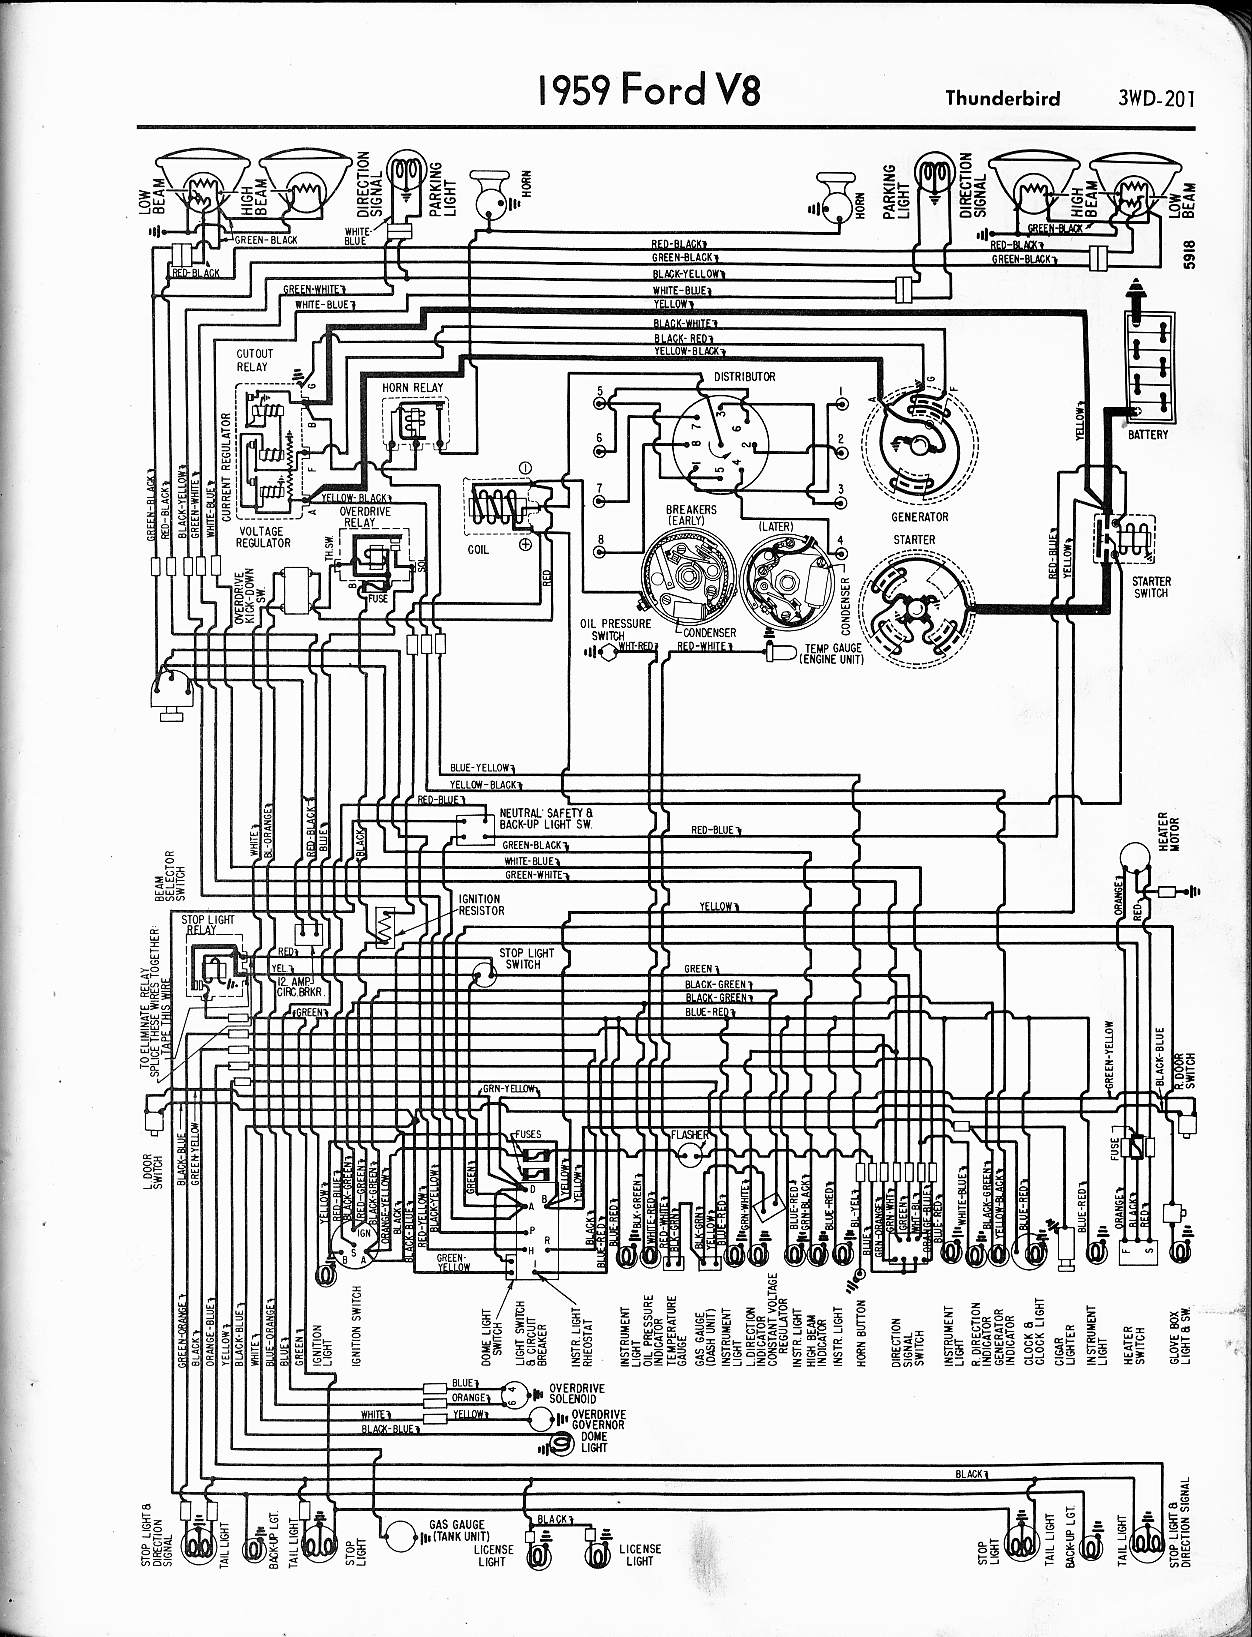 1957 ford ignition wiring diagram wiring diagrams ignition coil wiring with ballast resistor coil wiring diagram wiring diagrams